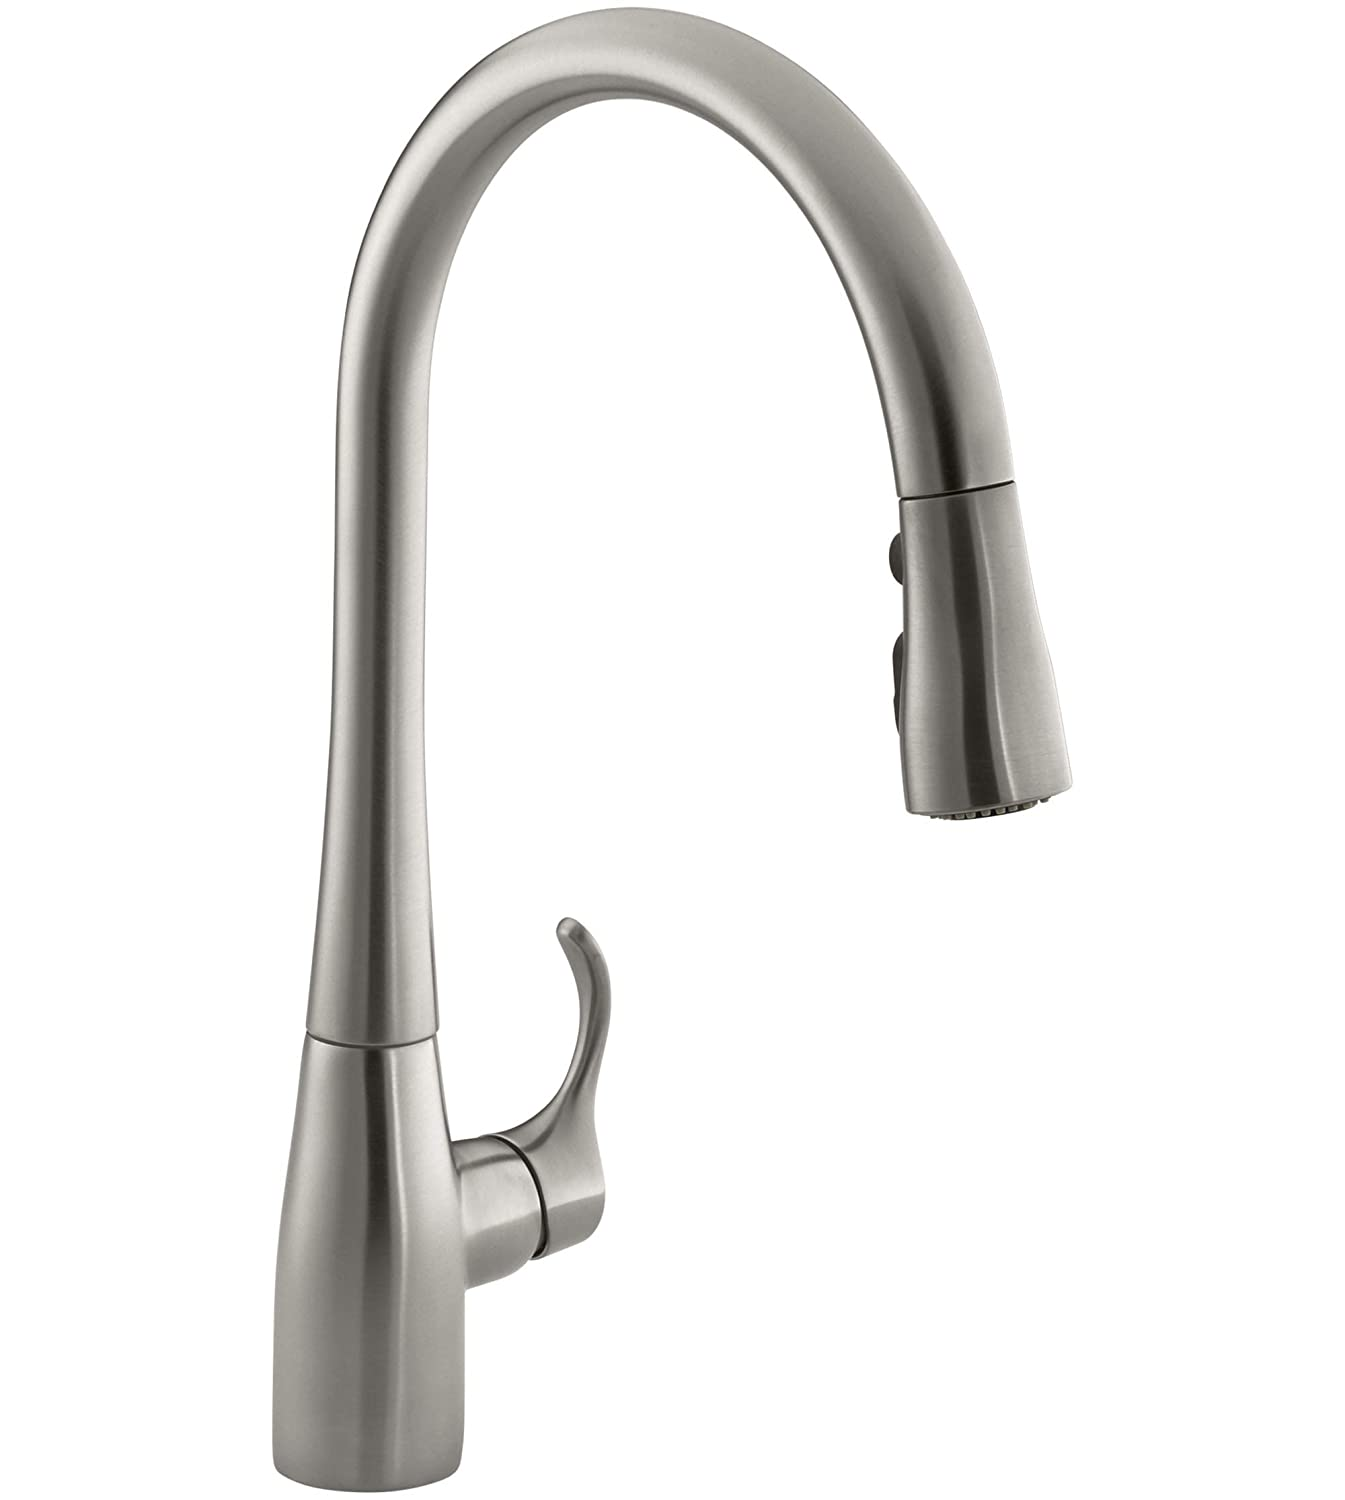 5. Kohler K-596-Vs Simplice High Arc Kitchen Sink Faucet